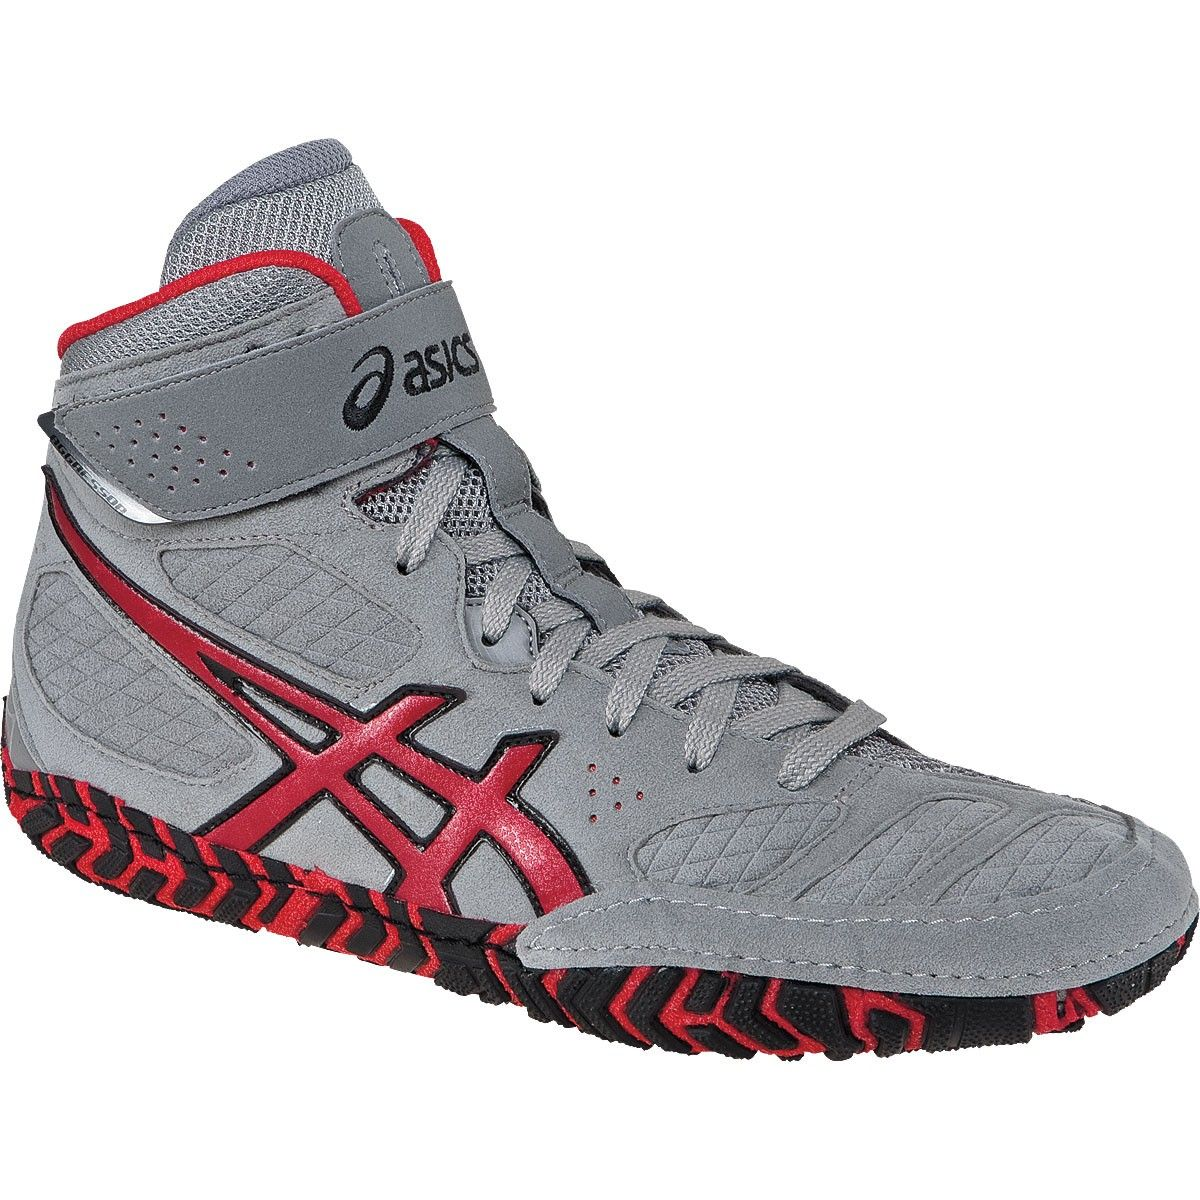 New 2013 Asics aggressor wrestling shoe! The Best Ever! | things ...